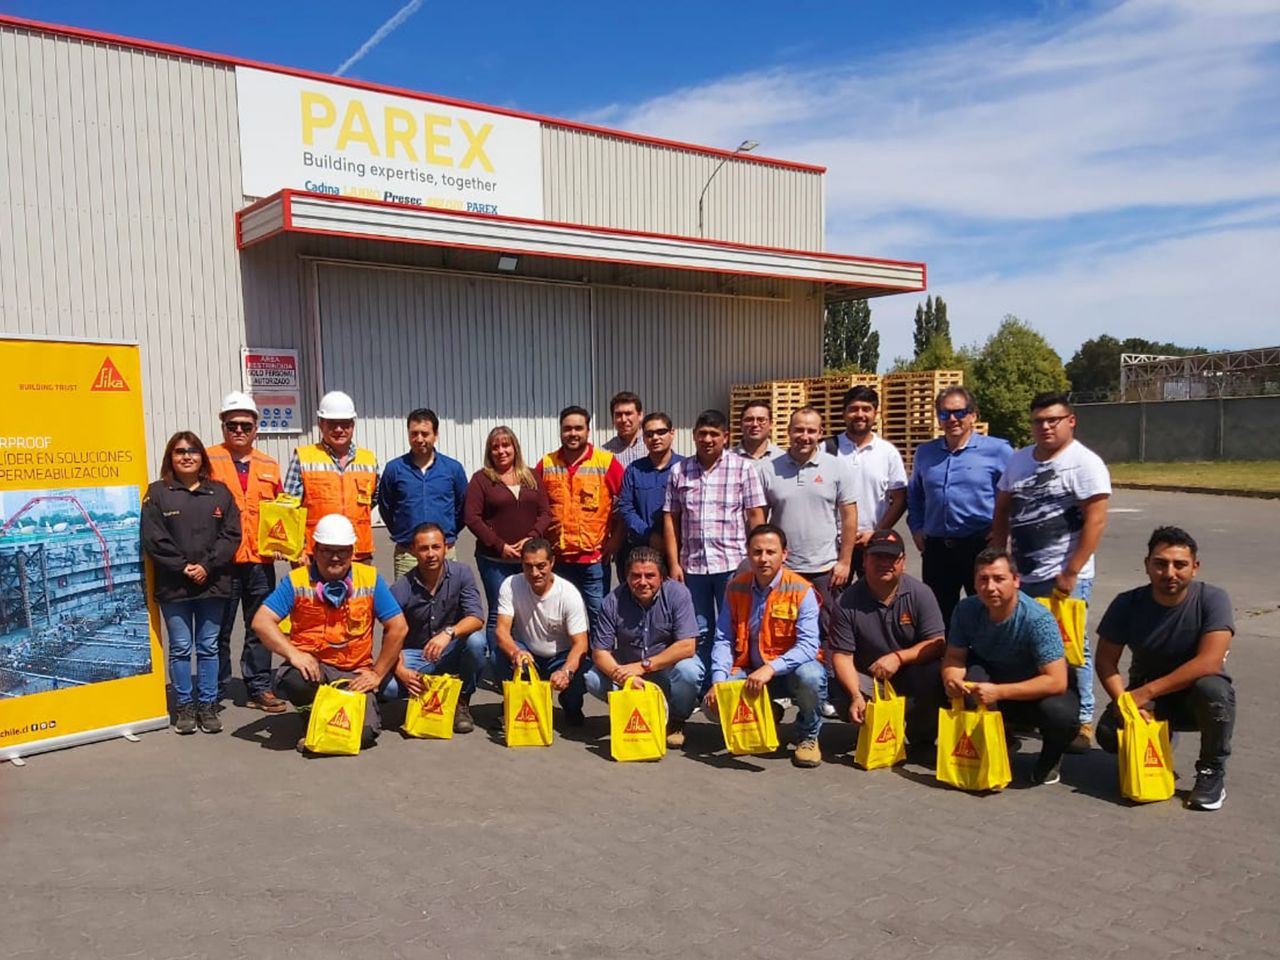 Training for Sika customers at the Parex plant